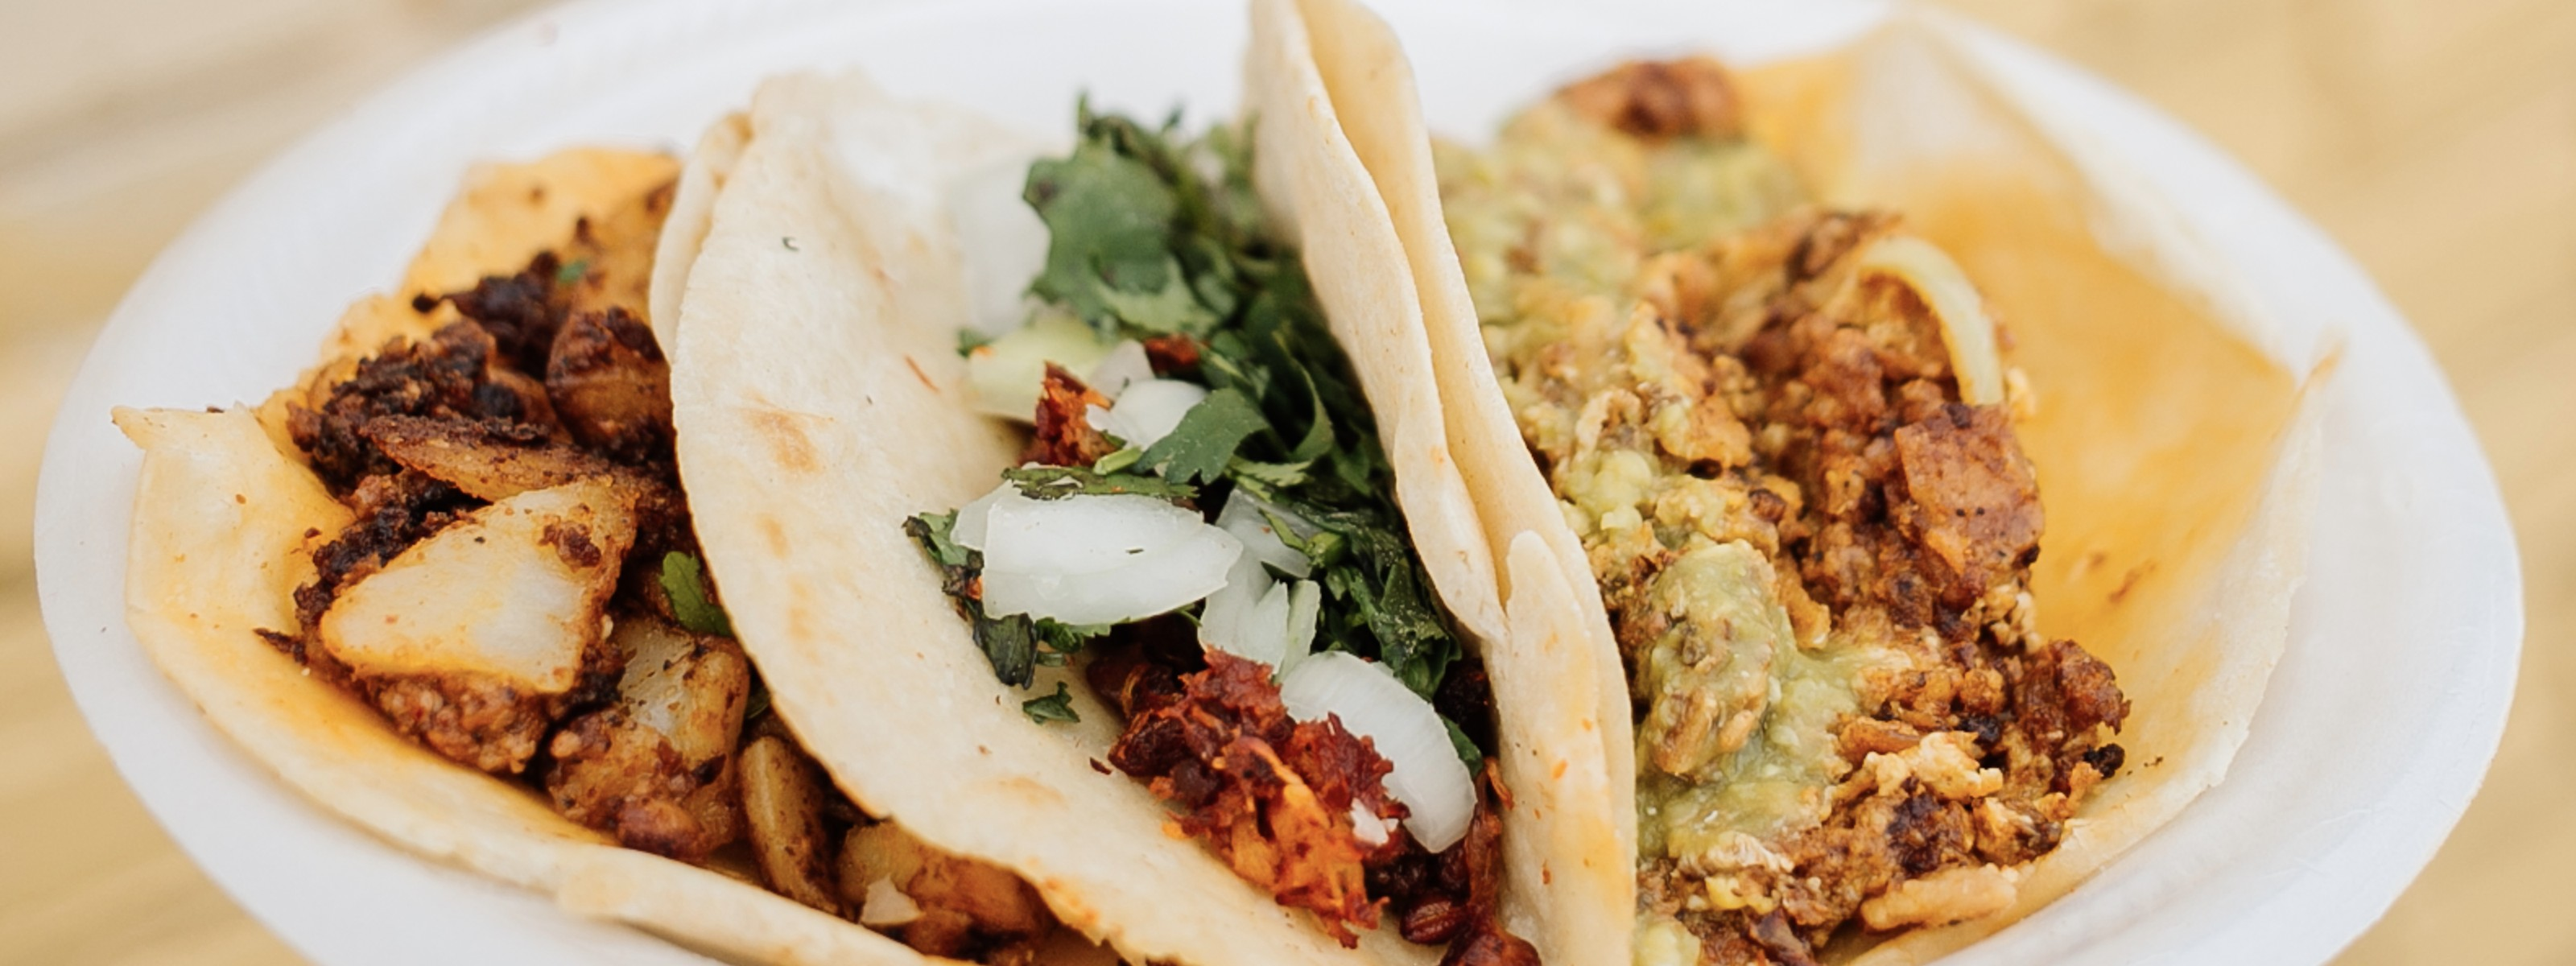 The Best Tacos In Austin - Austin - The Infatuation